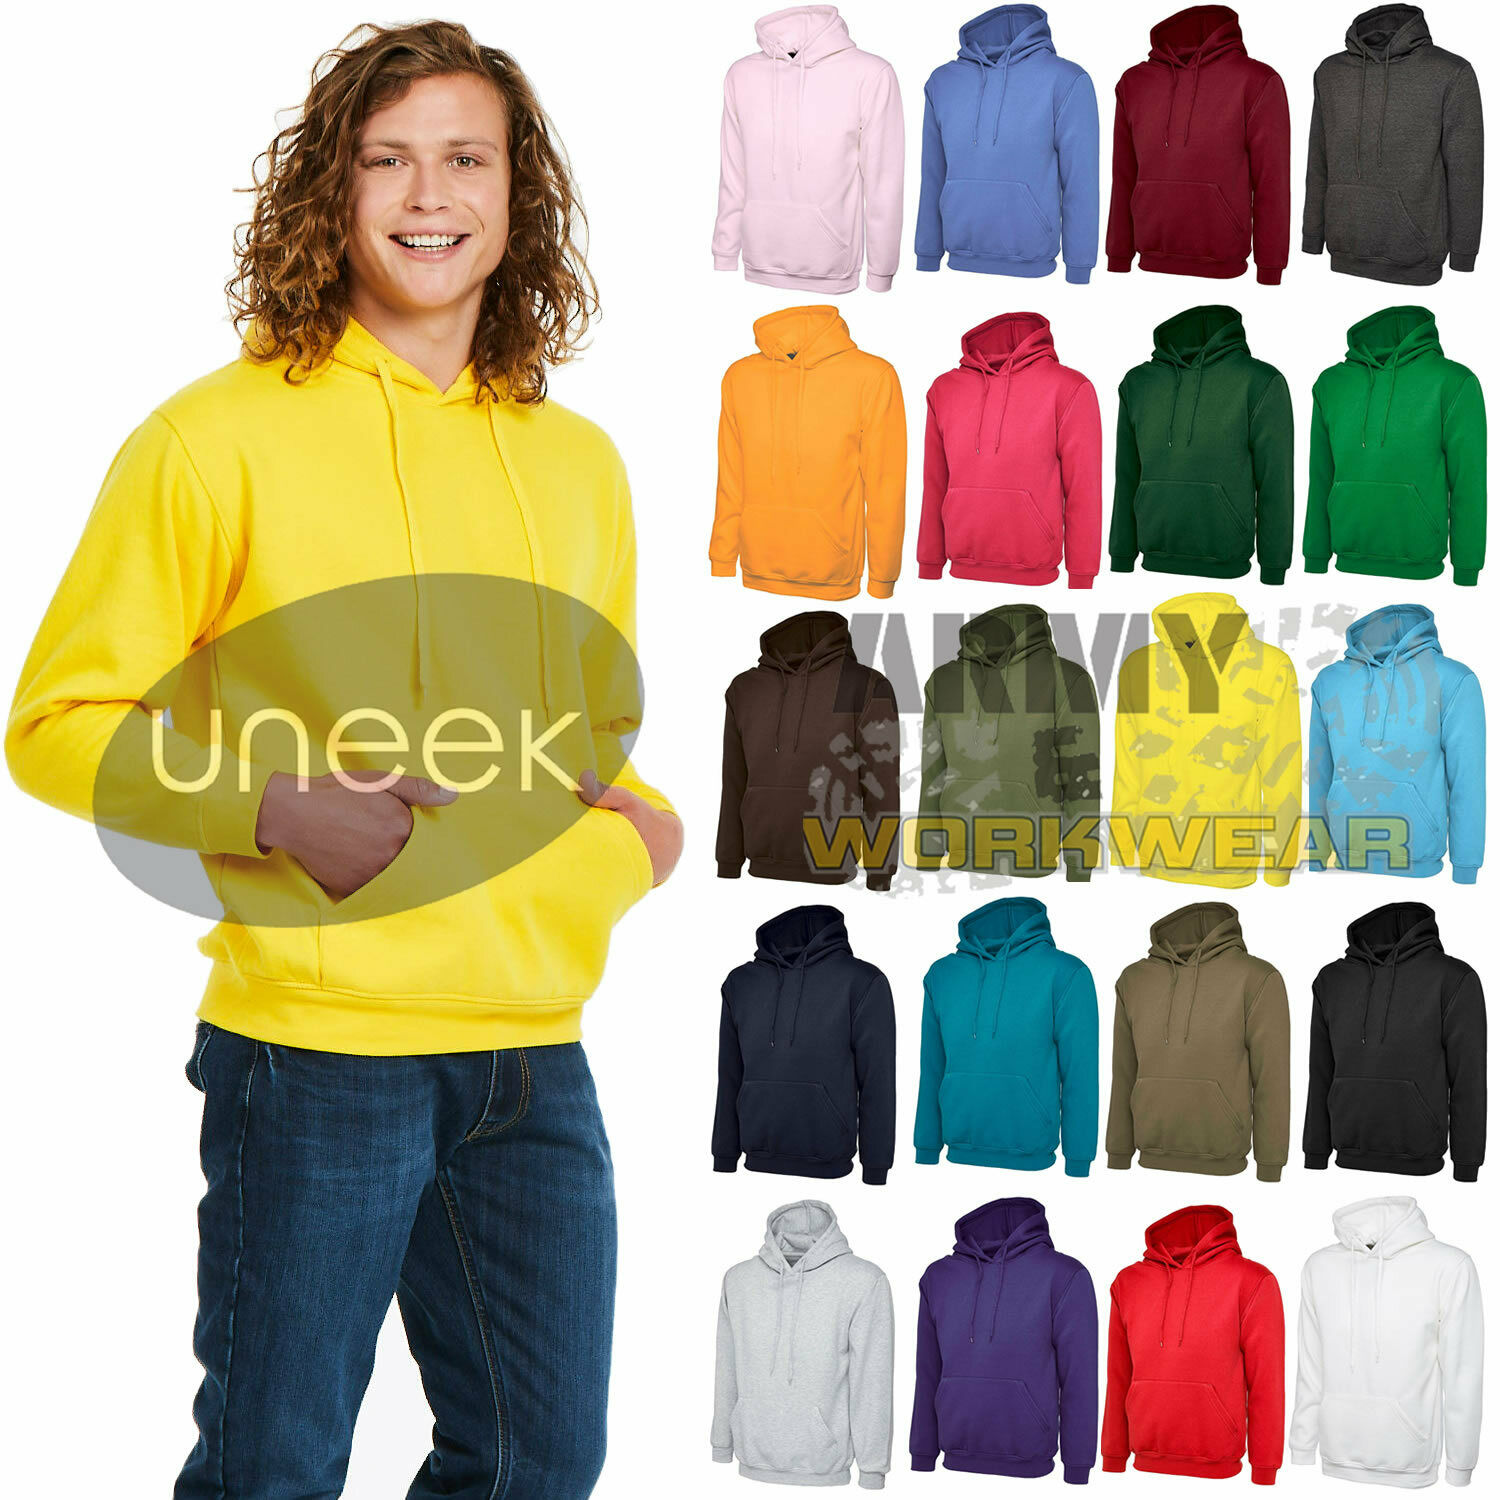 Uneek Hooded Sweatshirt Pullover Casual Classic Thick Sports Jumper Mens Hoody